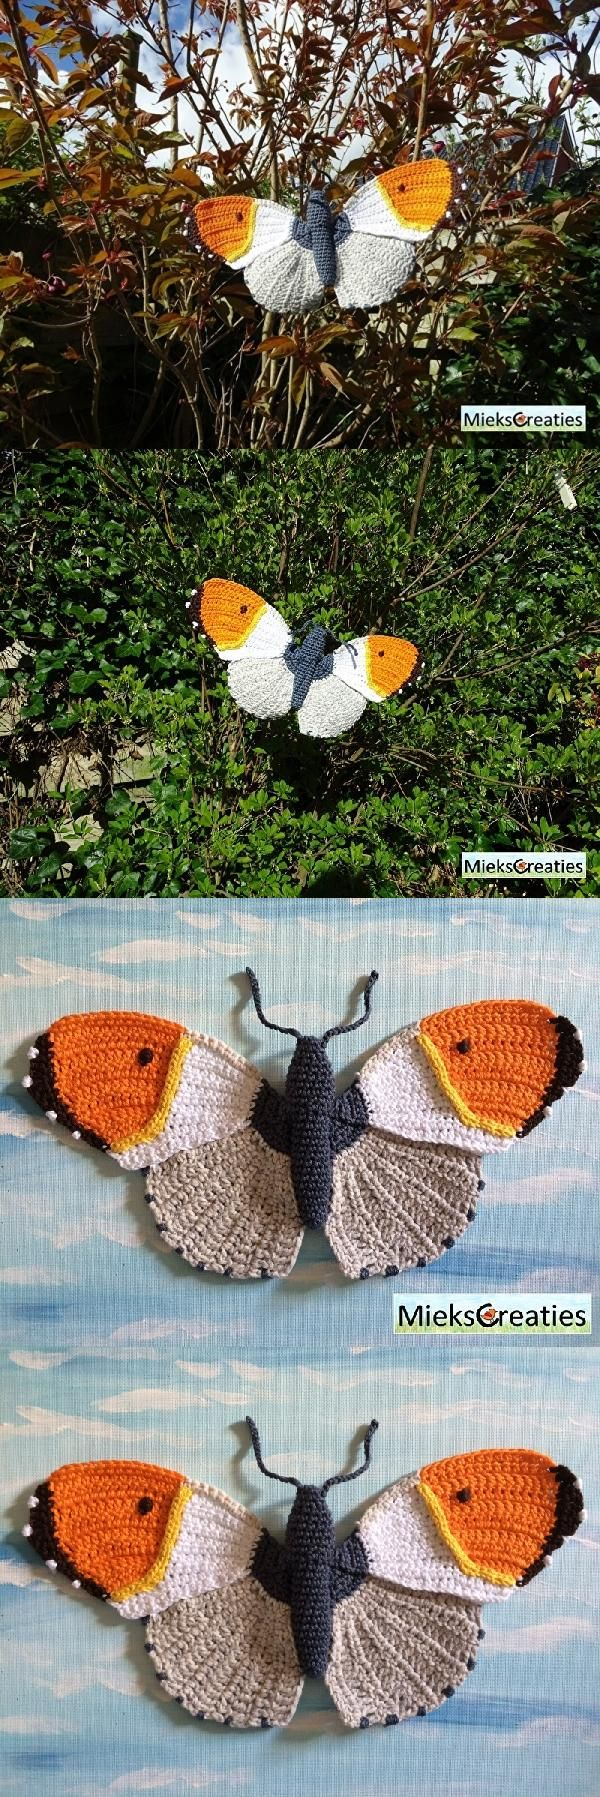 Orange Tip Butterfly amigurumi pattern by MieksCreaties | Häkeln ...